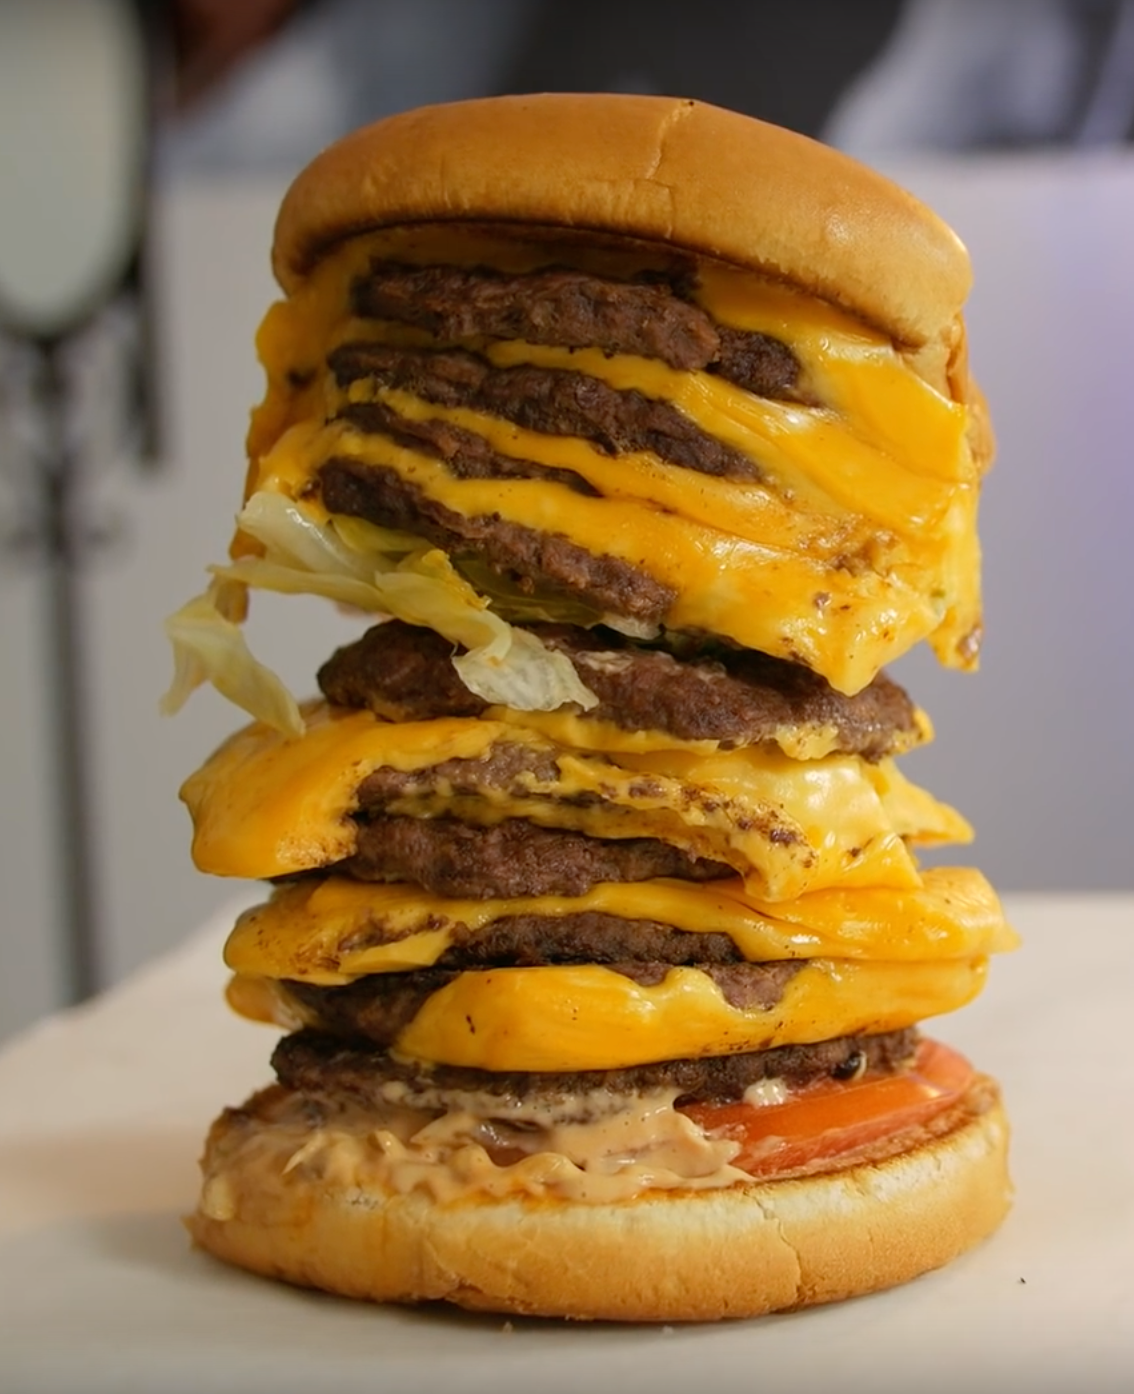 How Your Favorite In-N-Out Menu Item Predicts Your Sexual Kinks